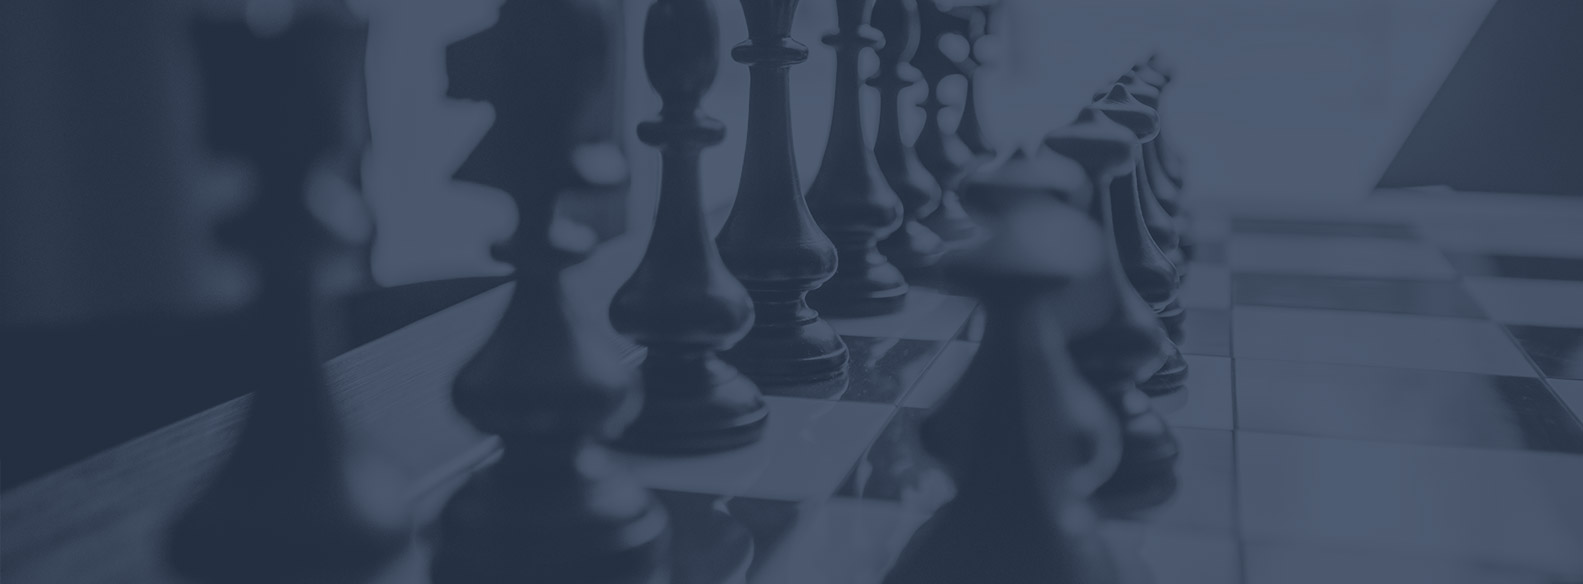 Chess pieces representing Diligentiam terms of use page